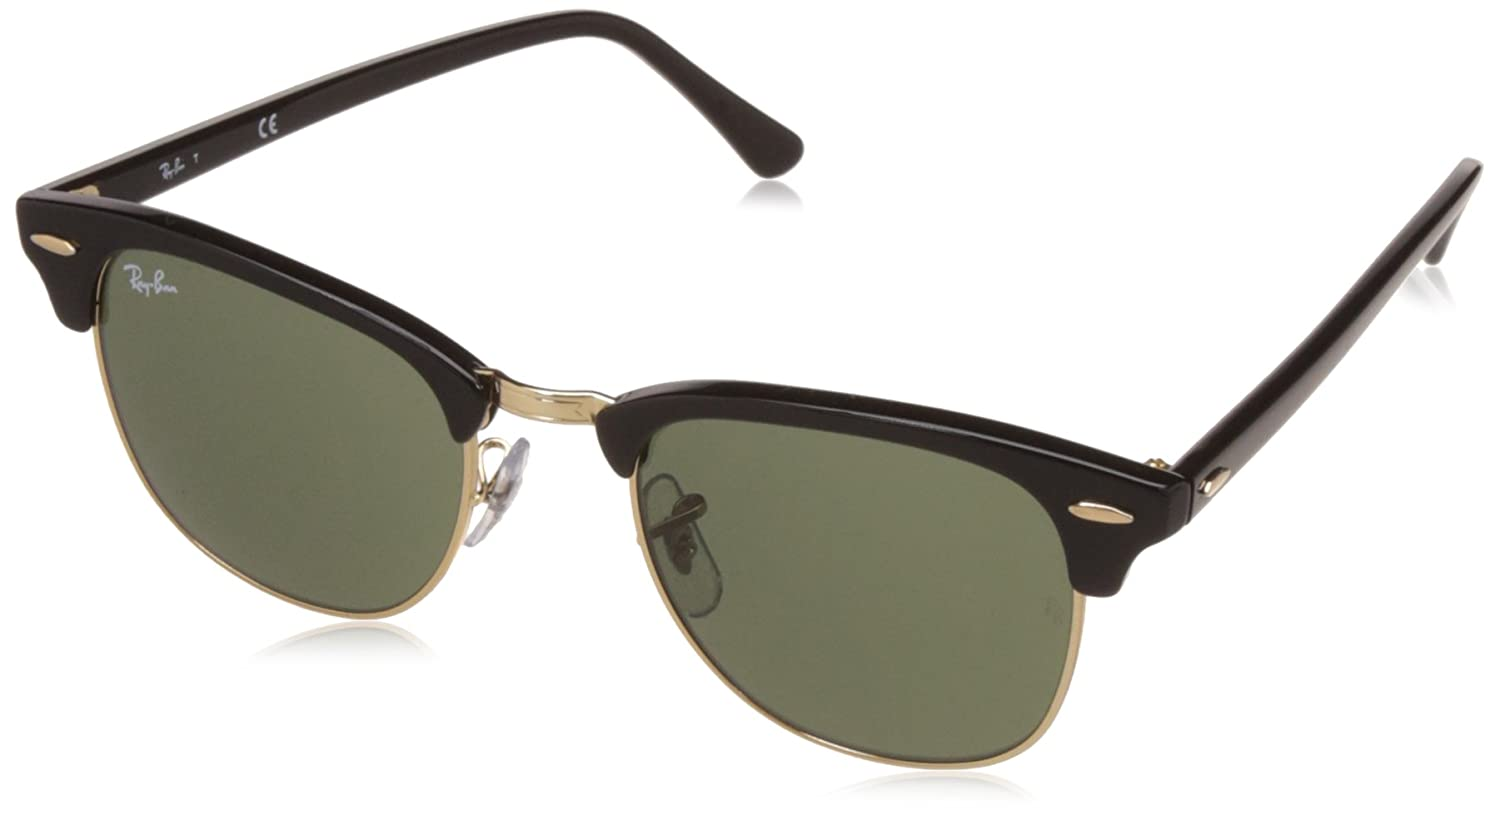 e148053d4 Amazon.com: Ray-Ban RB3016 Clubmaster Square Sunglasses: Clothing